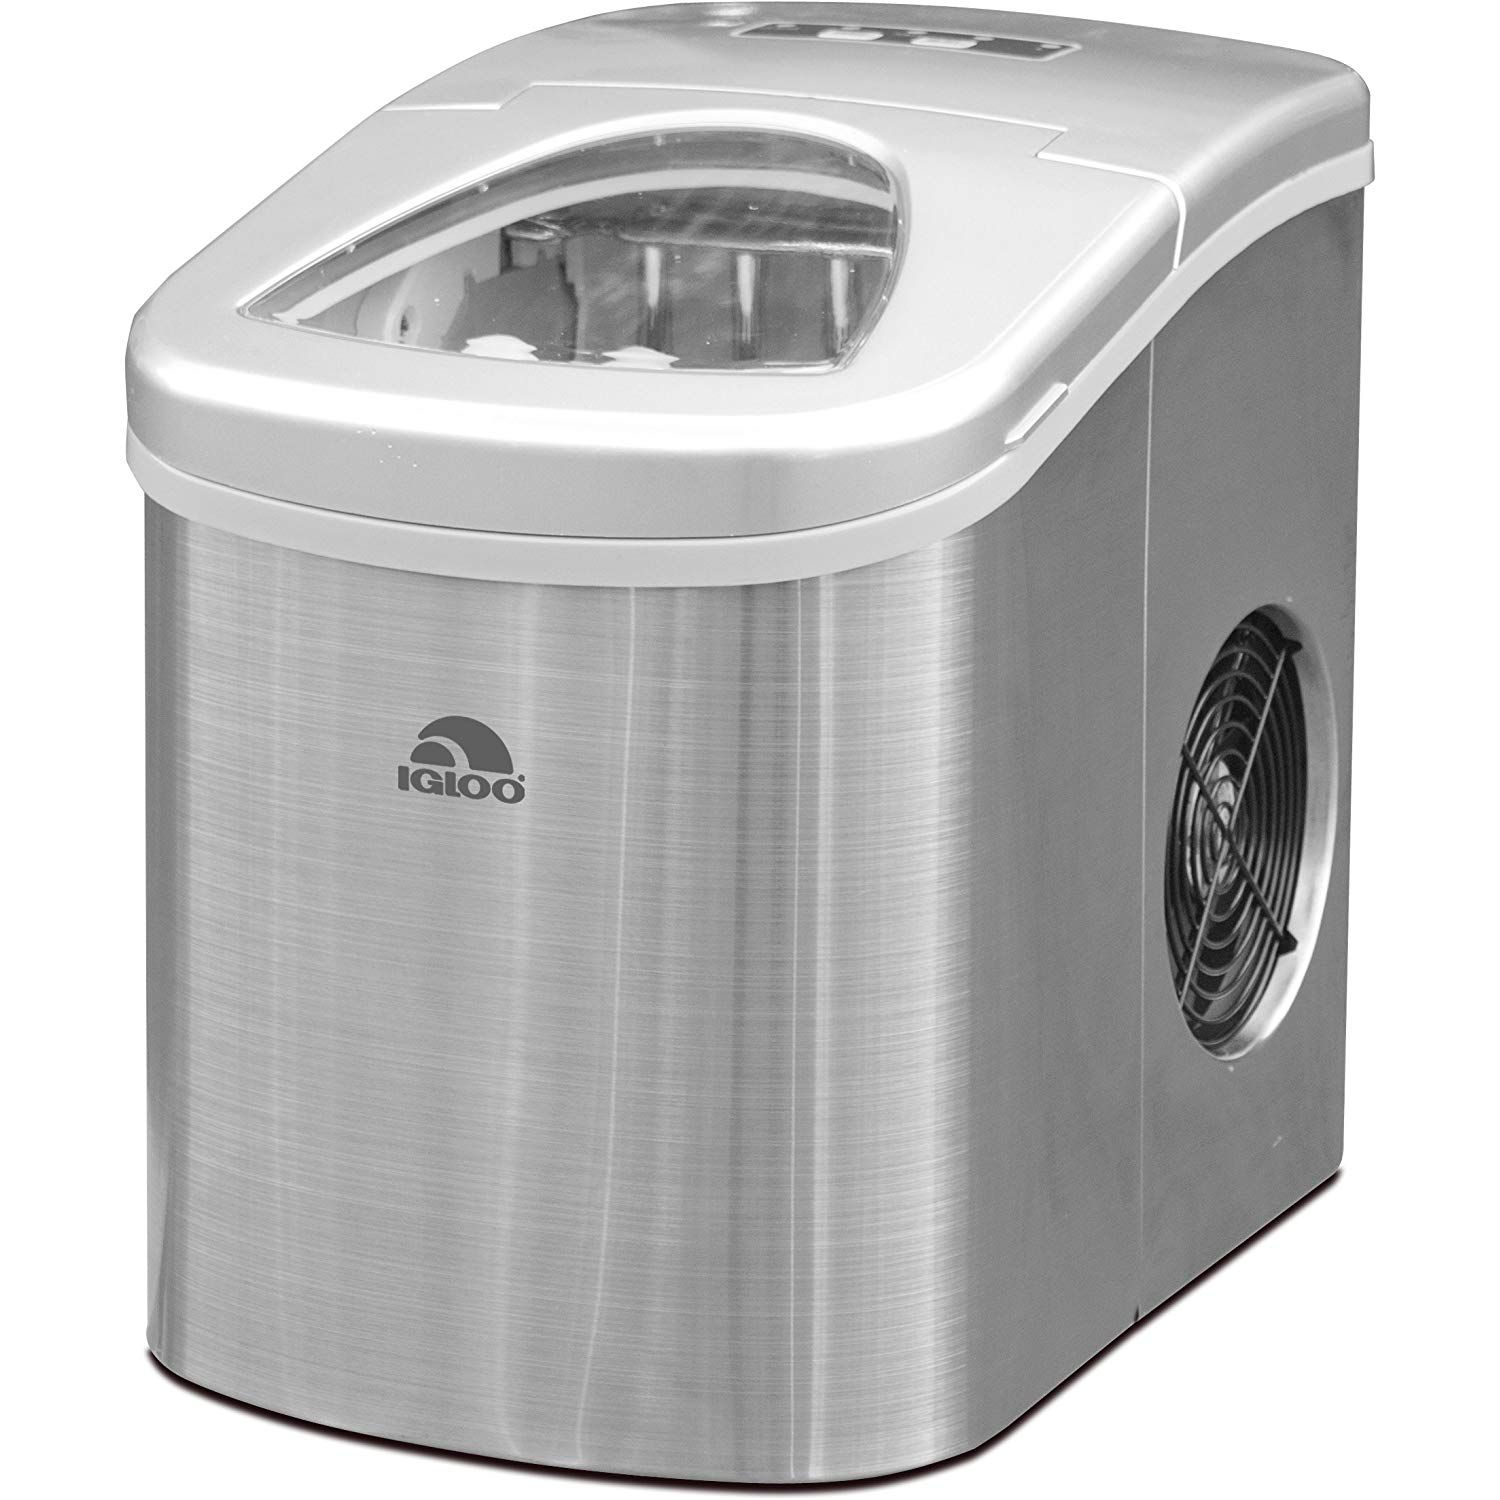 Igloo Ice105 Counter Top Compact Ice Maker Stainless Appliances